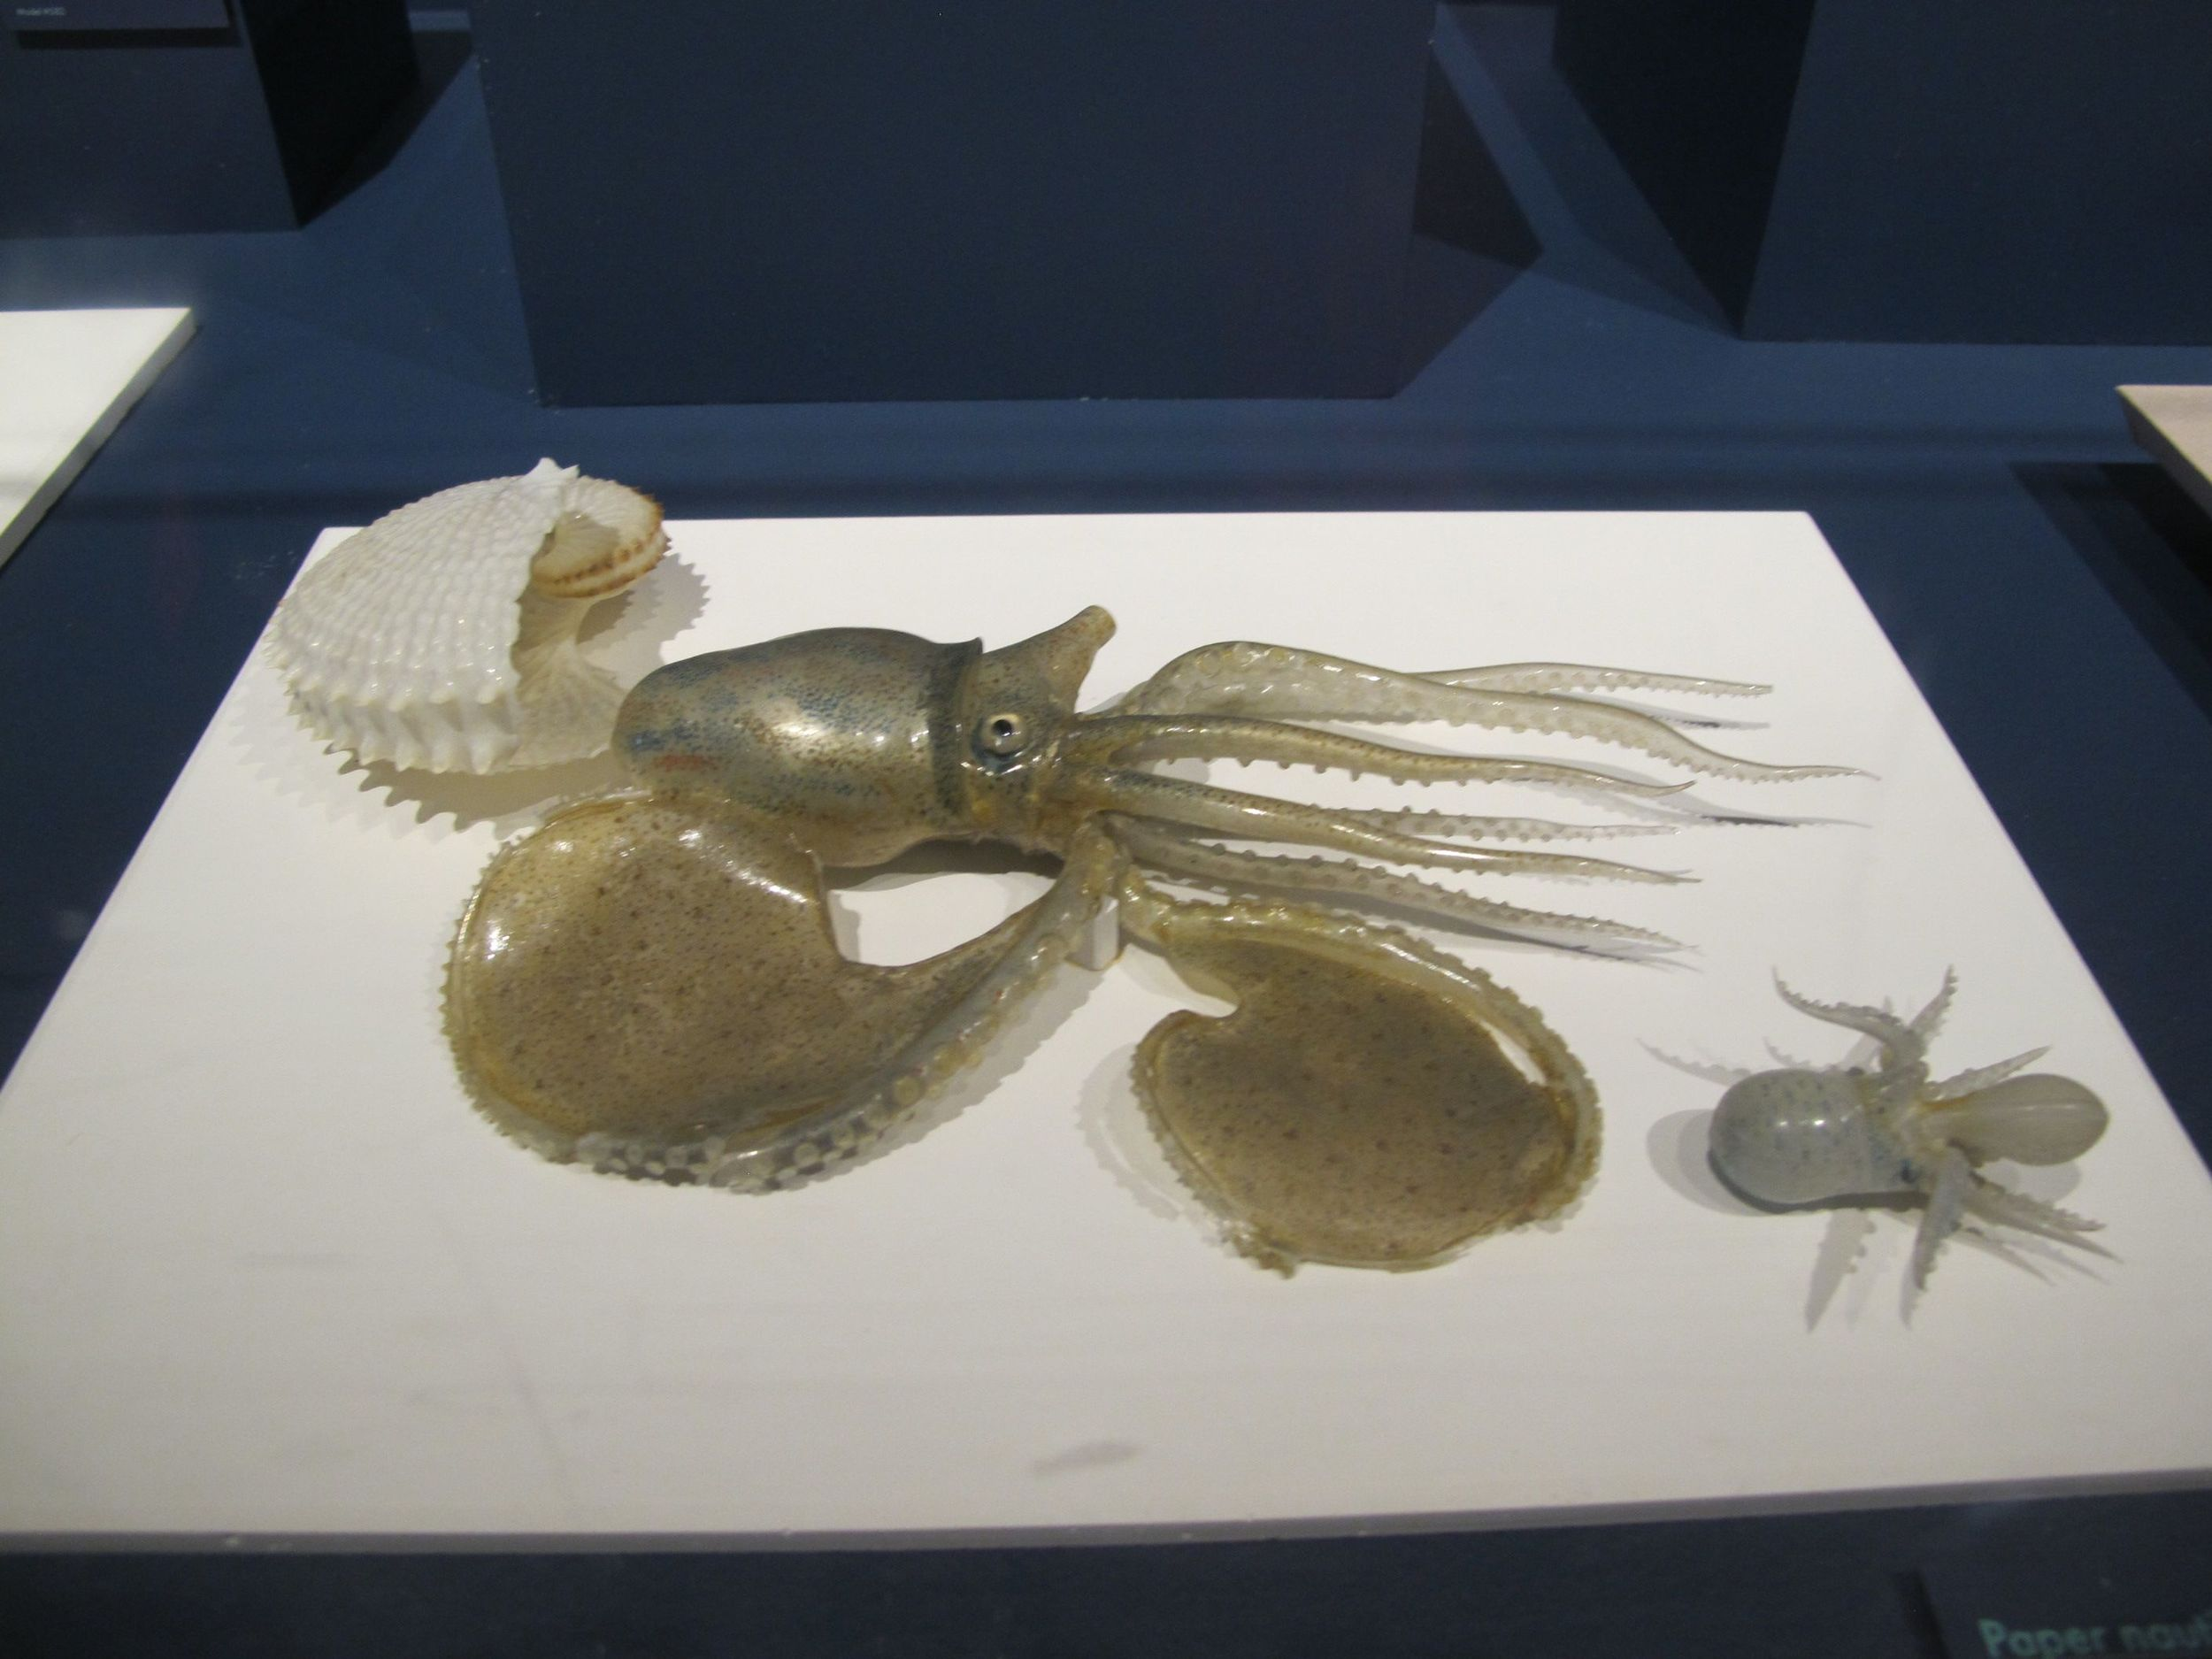 The elder Blaschka began making glass mollusks and other sea creatures before being commissioned to do his famous flowers.